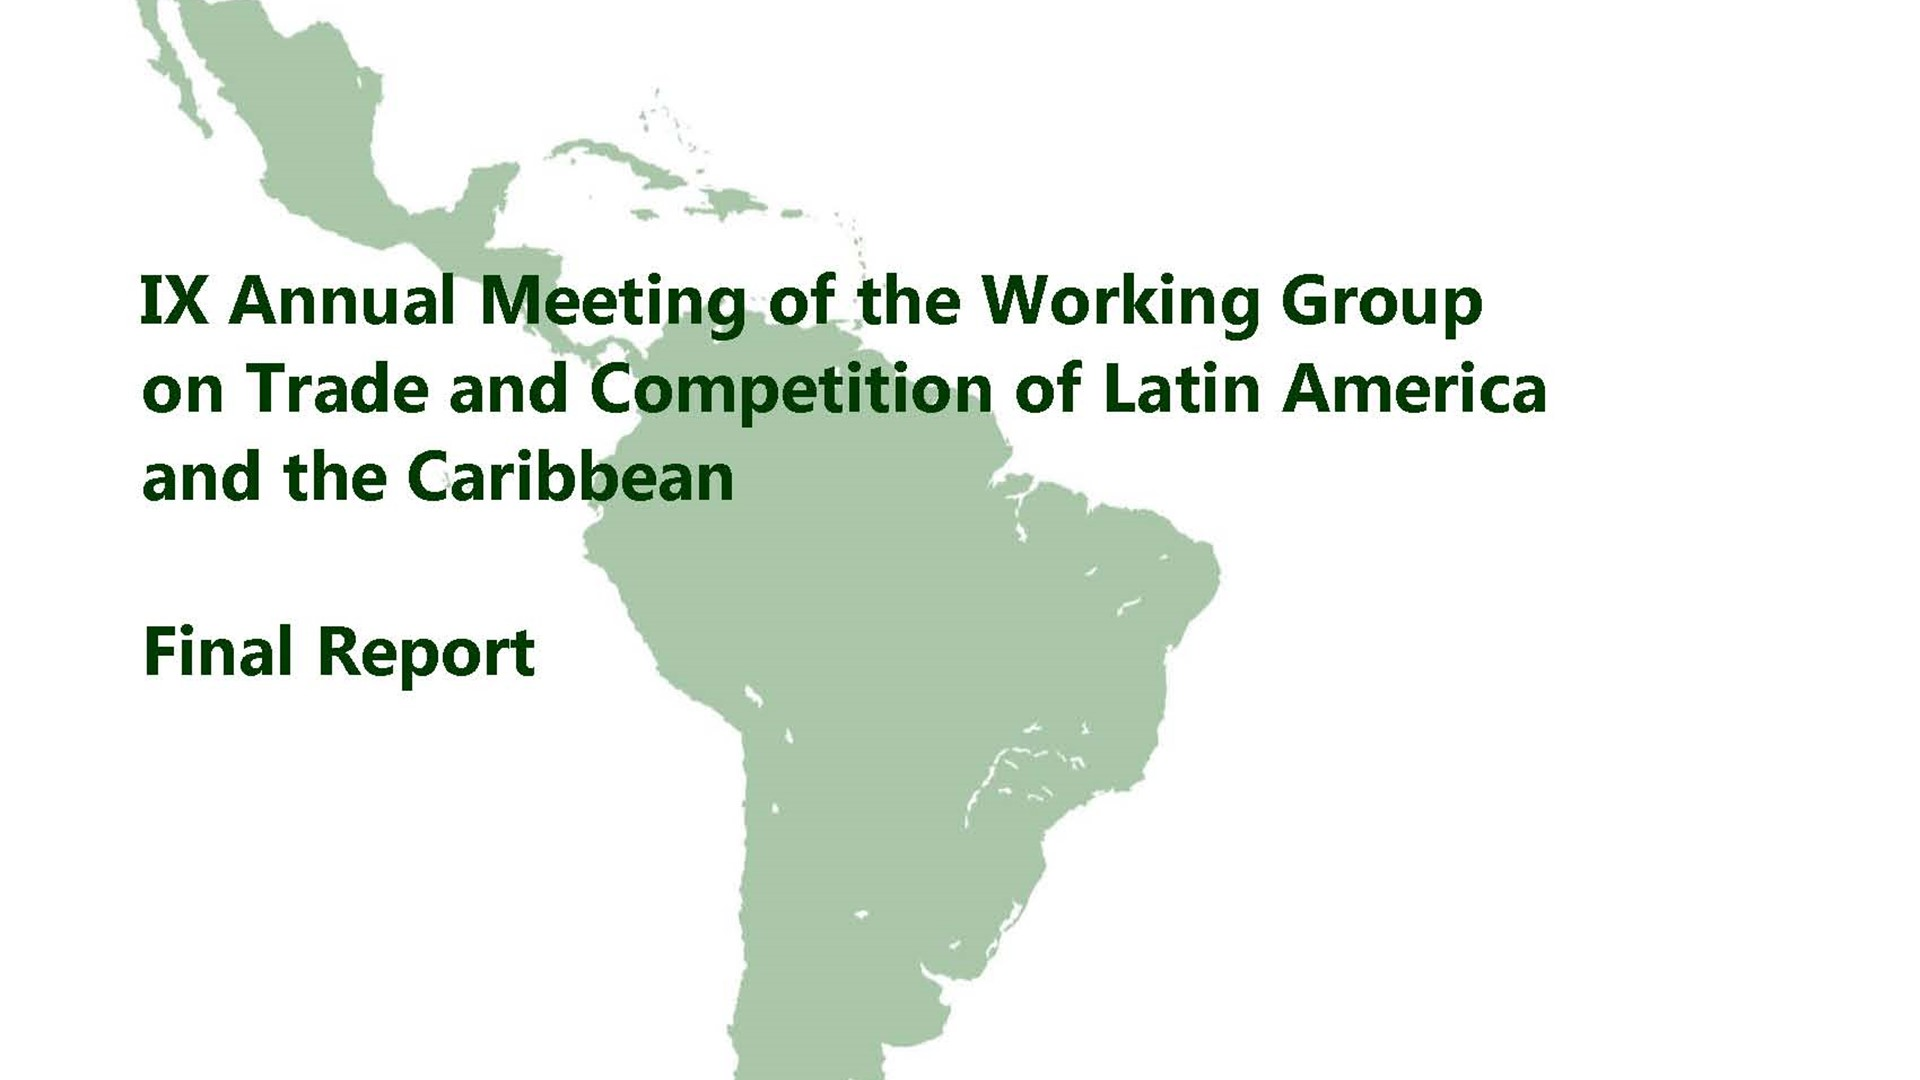 IX Annual Meeting of the Working Group on Trade and Competition